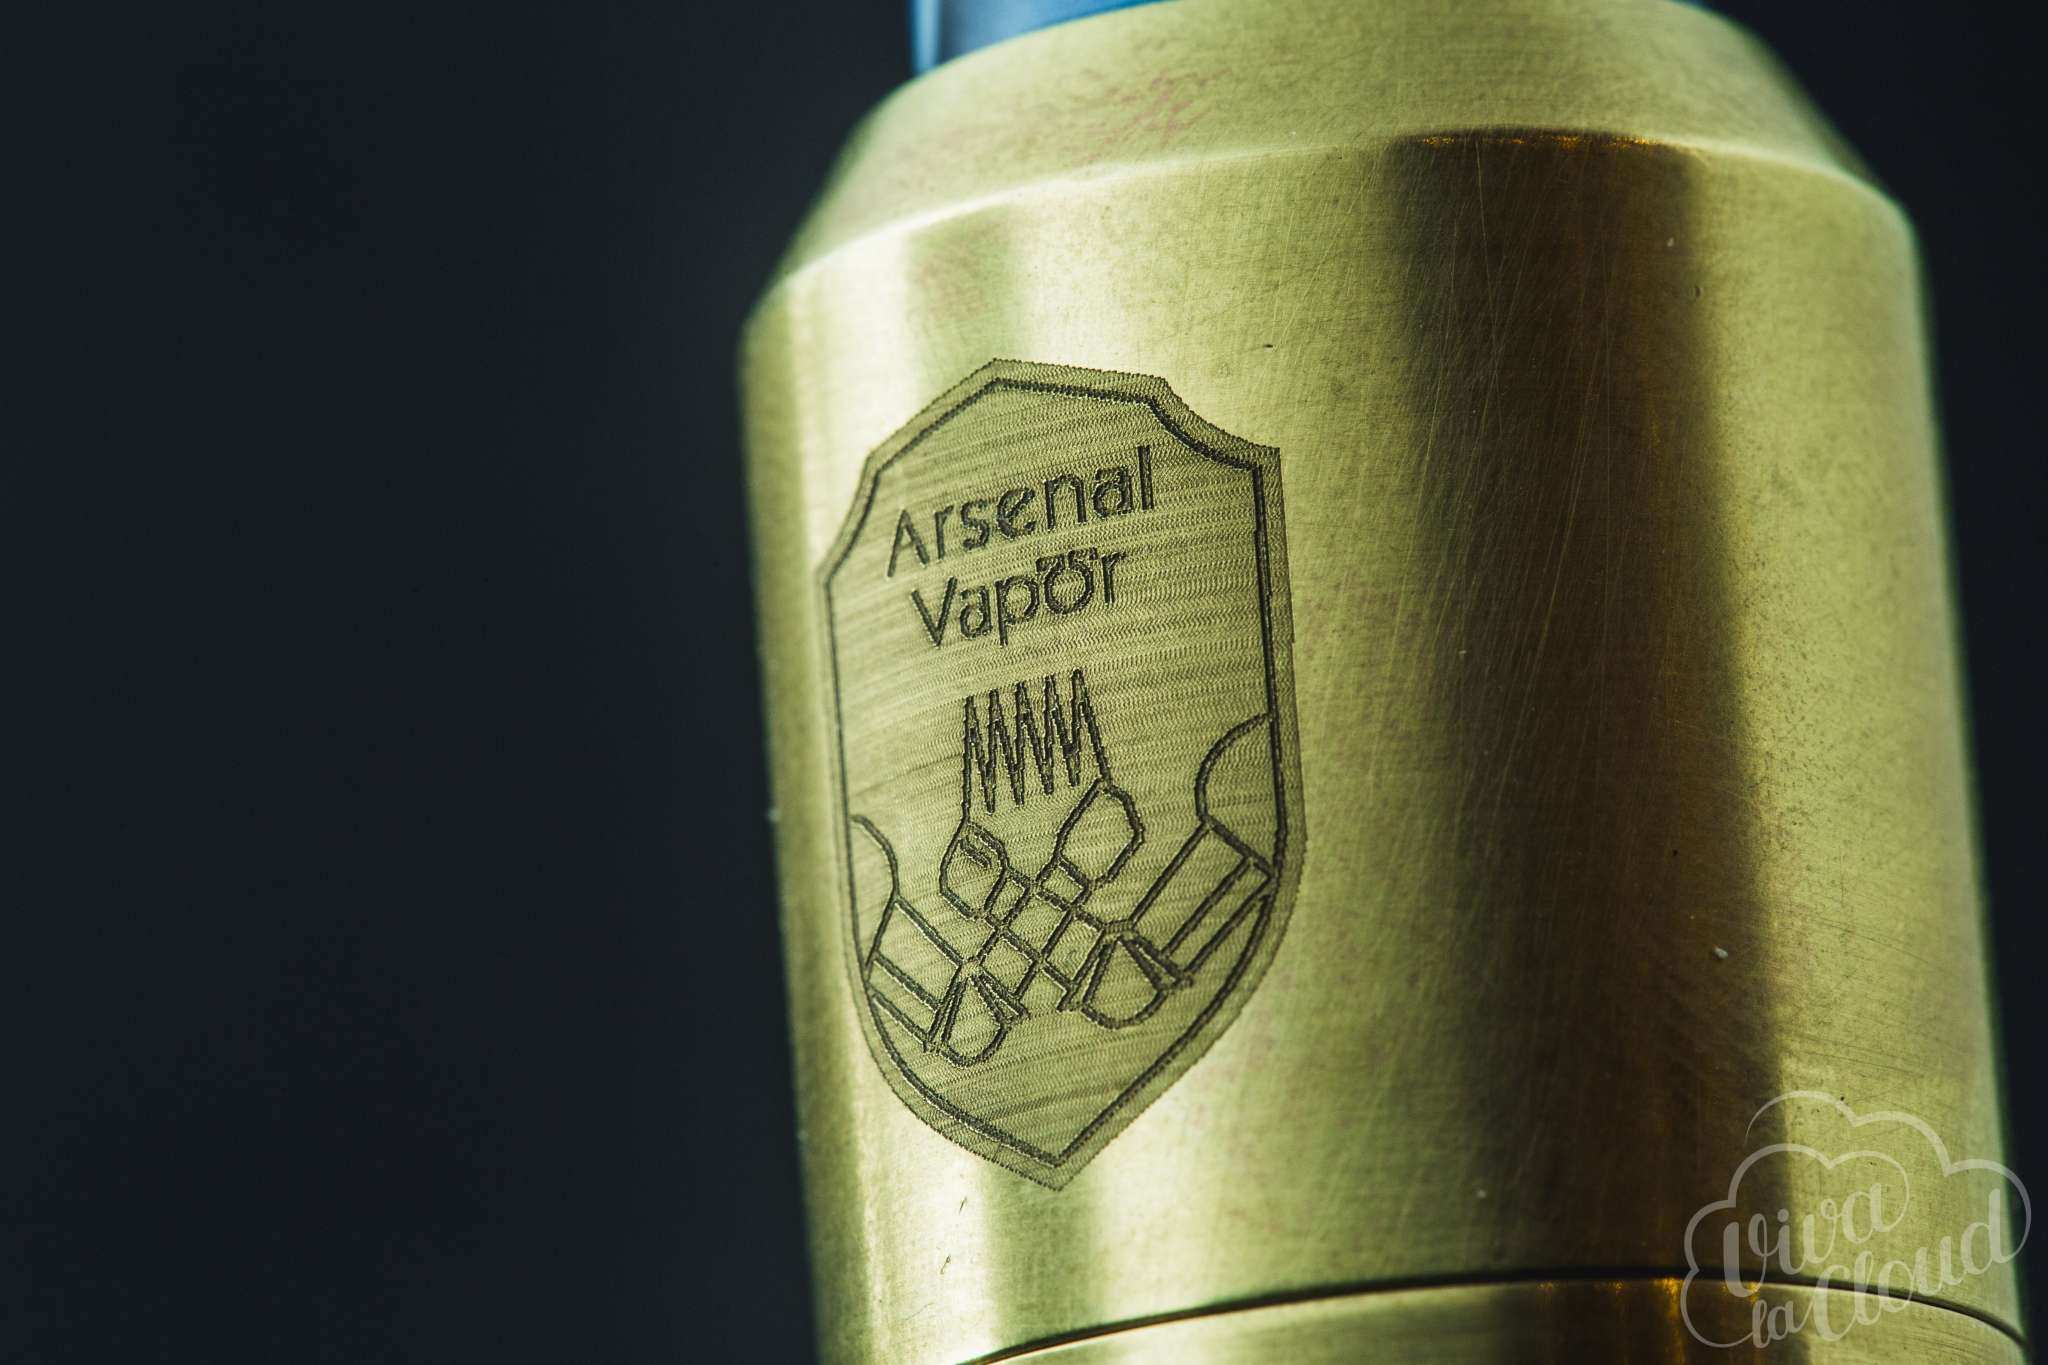 ARSENAL VAPOR ARSENAL VAPOR MECH ARSENAL VAPOR RDA